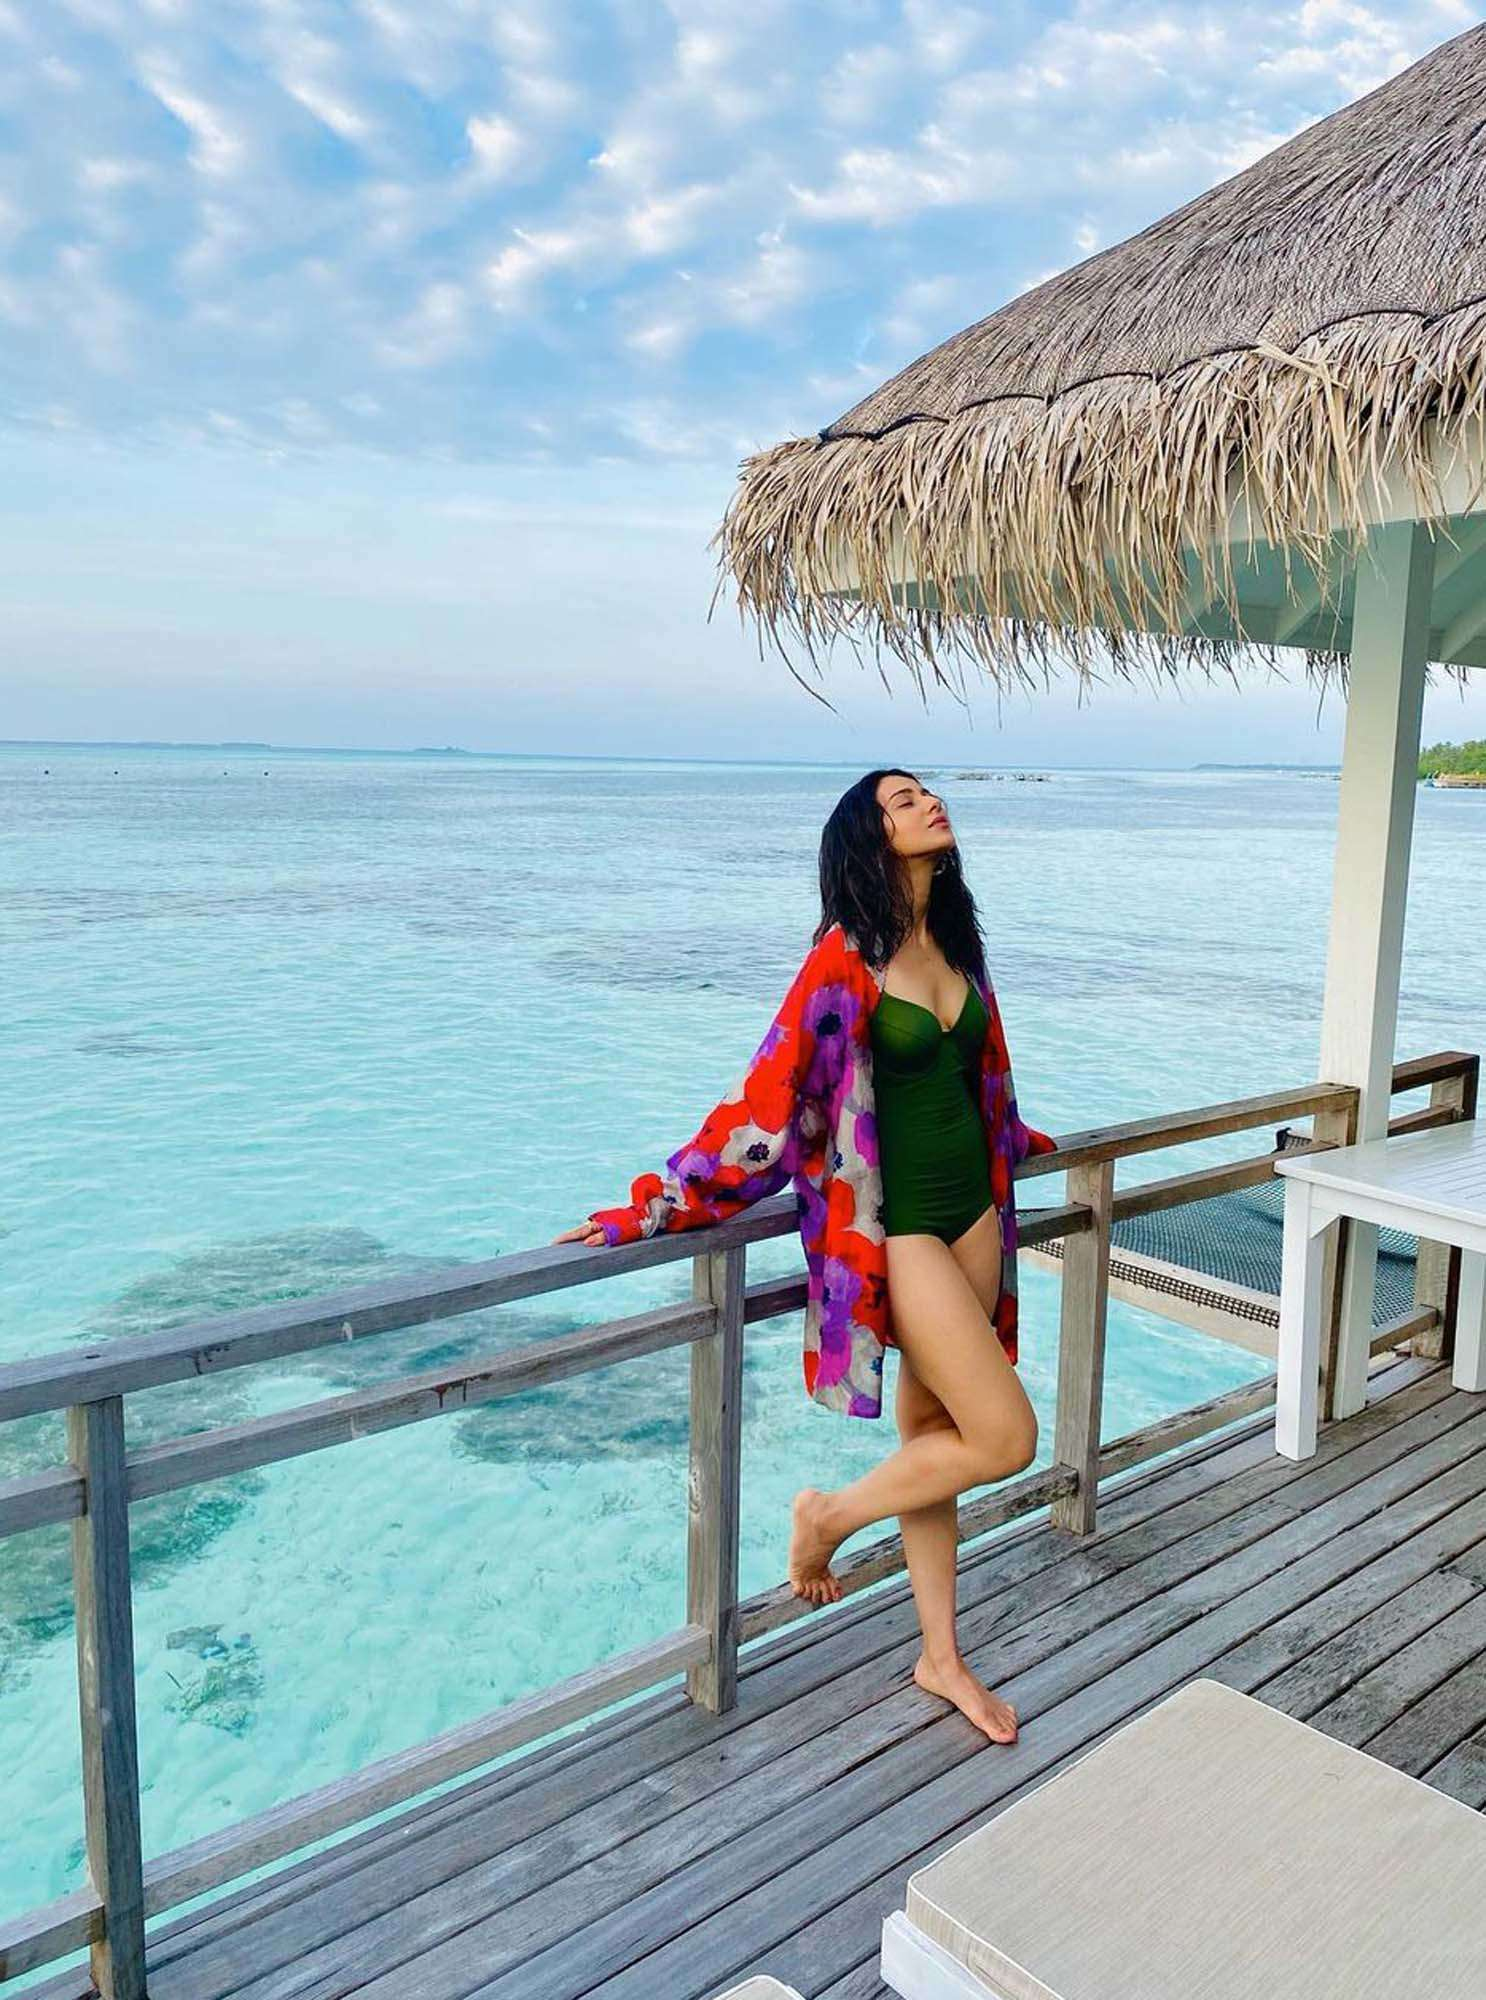 Beach vacation pictures of Rakul Preet Singh will make you pack your bags!